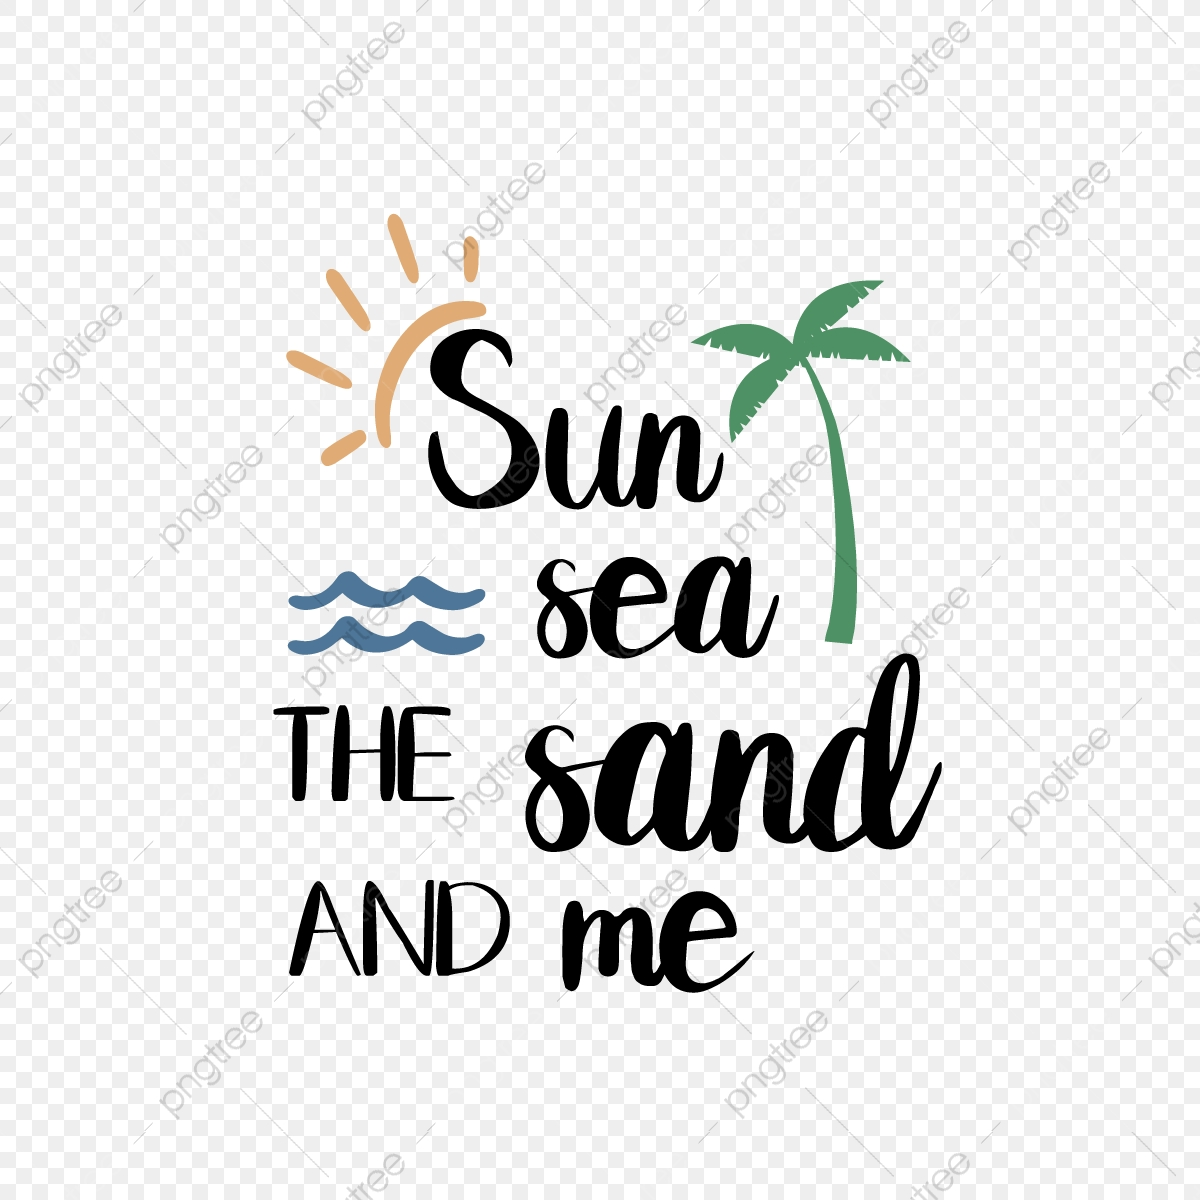 Svg Black Sunny Beach And My Hand Drawn Leaves Ocean Illustration Font Effect Eps For Free Download